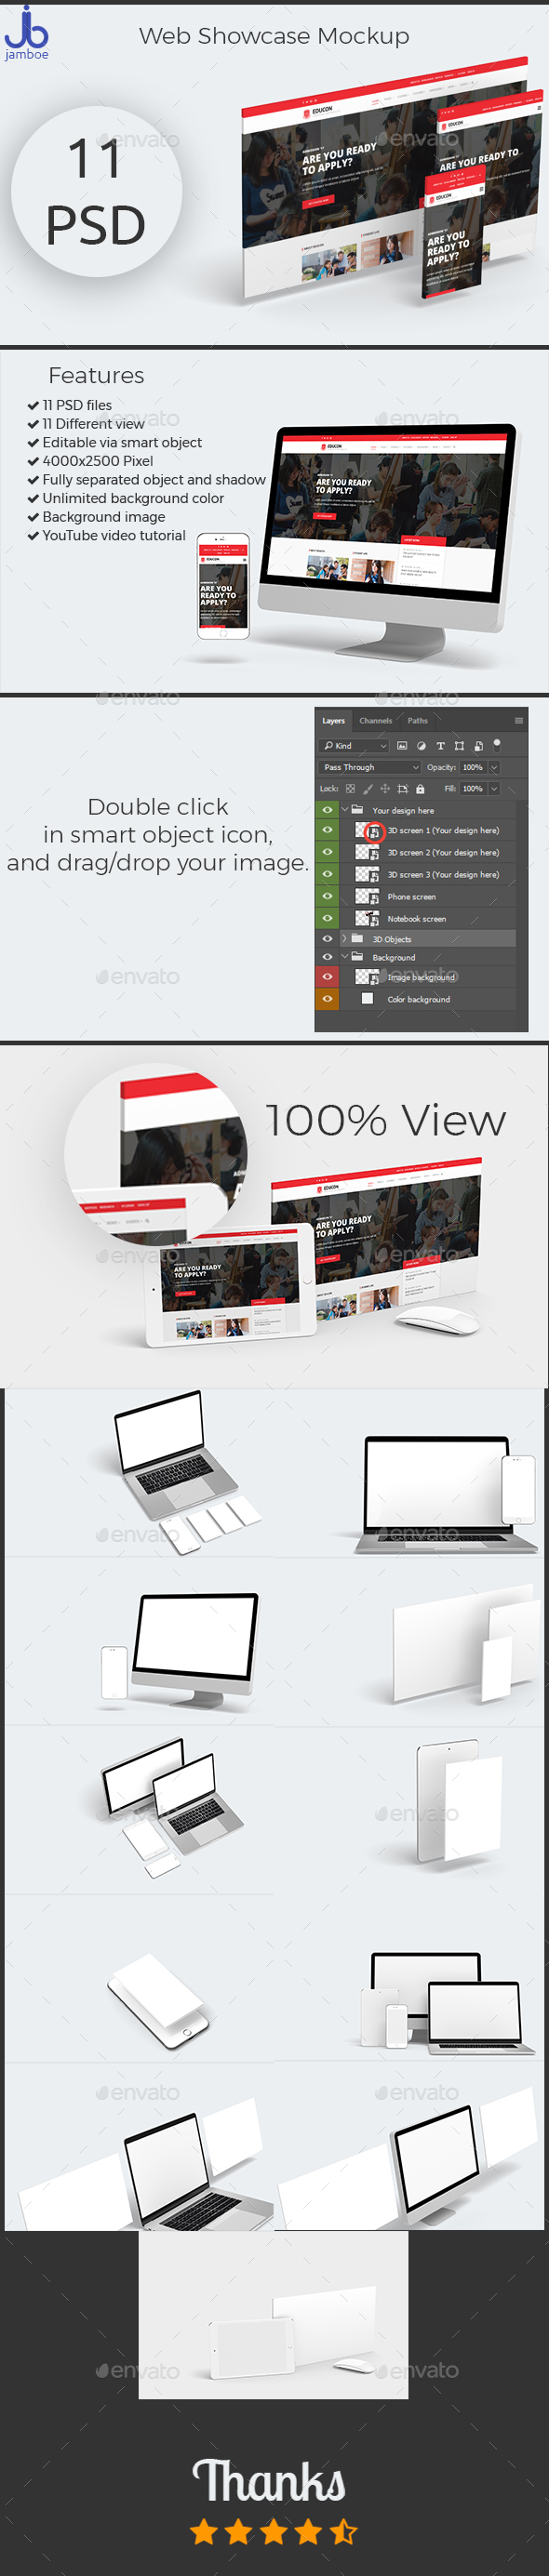 3D Web Showcase Mockup (11 PSD Files) - Multiple Displays